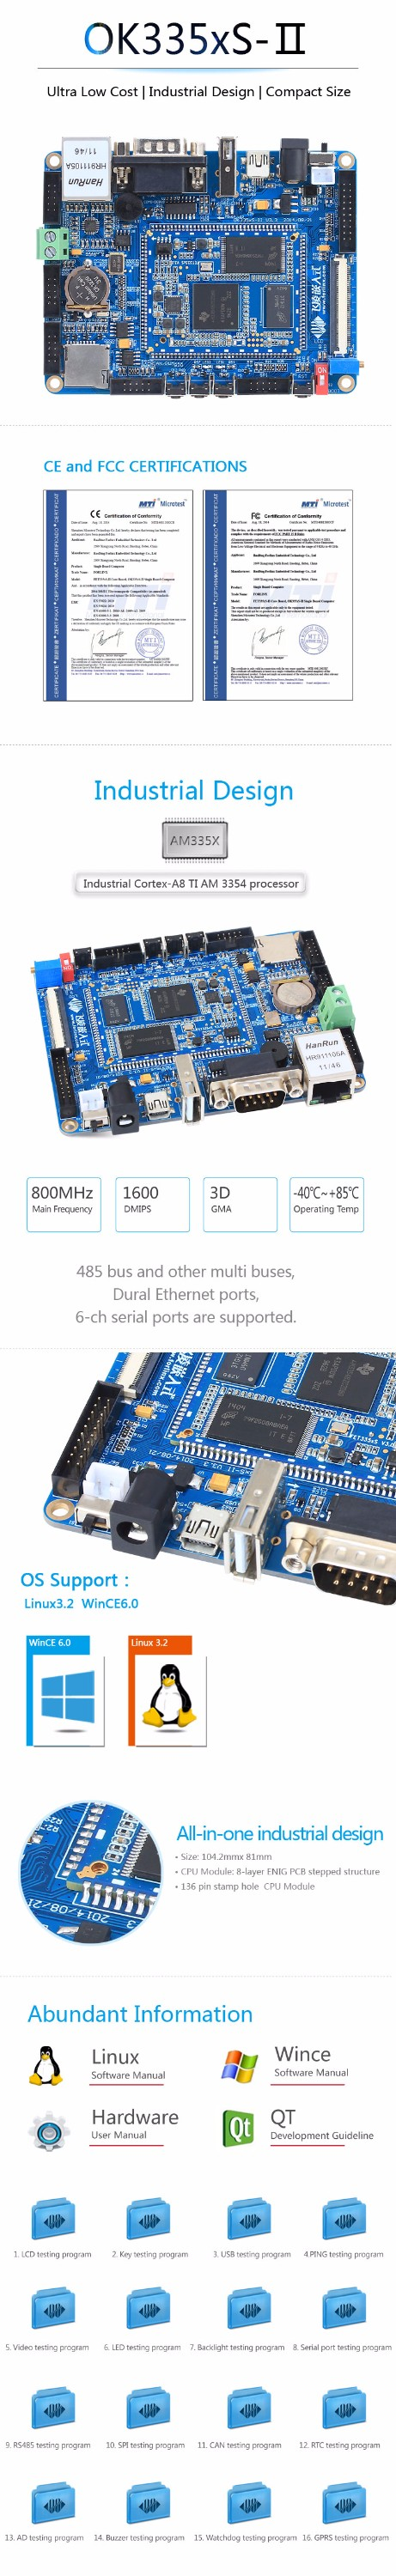 Low Price Industrial Grade ARM Linux Single Board Computer OK335xS-II Windows CE Development Board